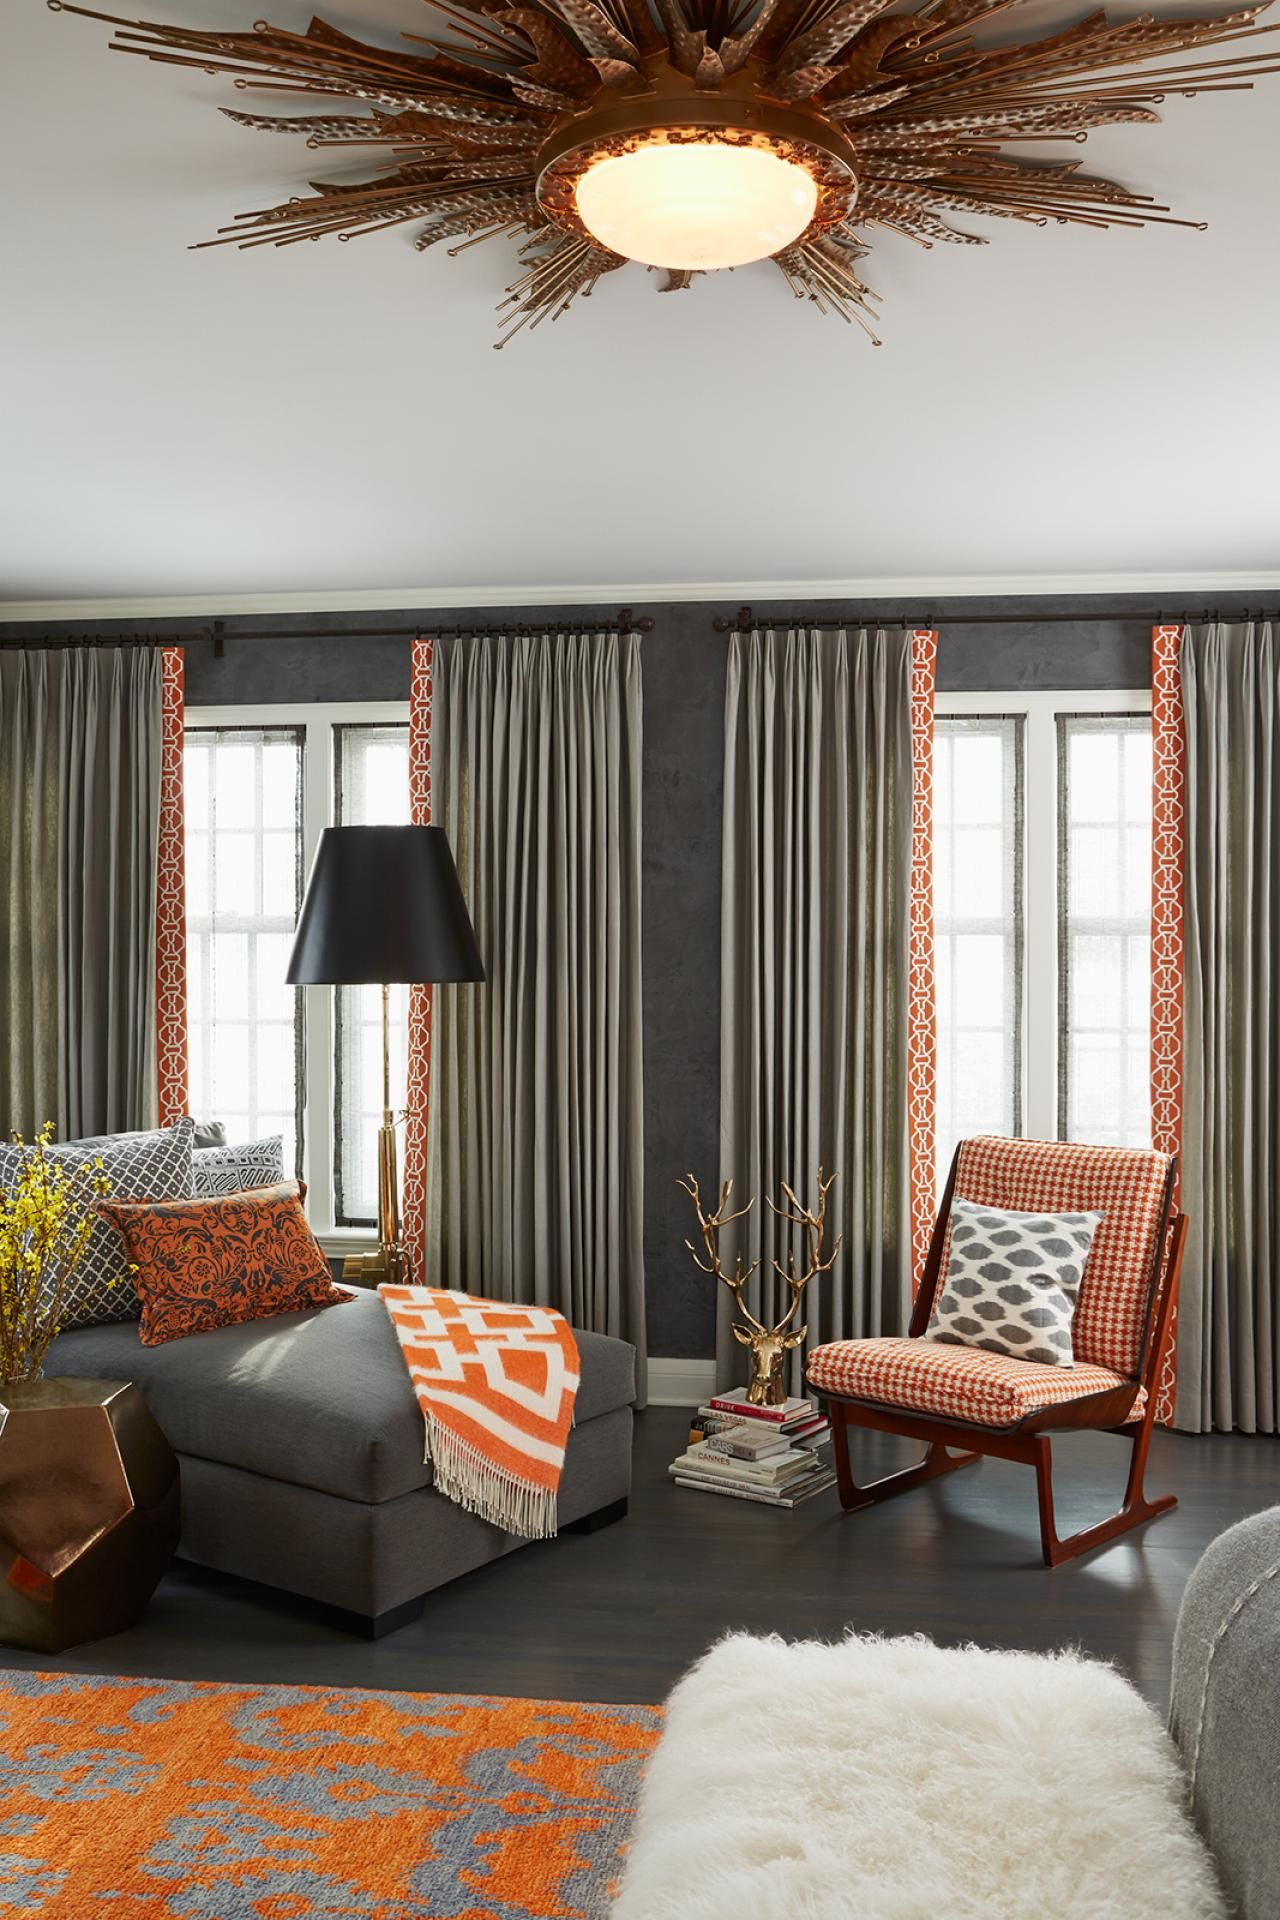 Decorating With Orange Orange Decorating Ideas Living Room Orange Grey And Orange Living Room Living Room Color